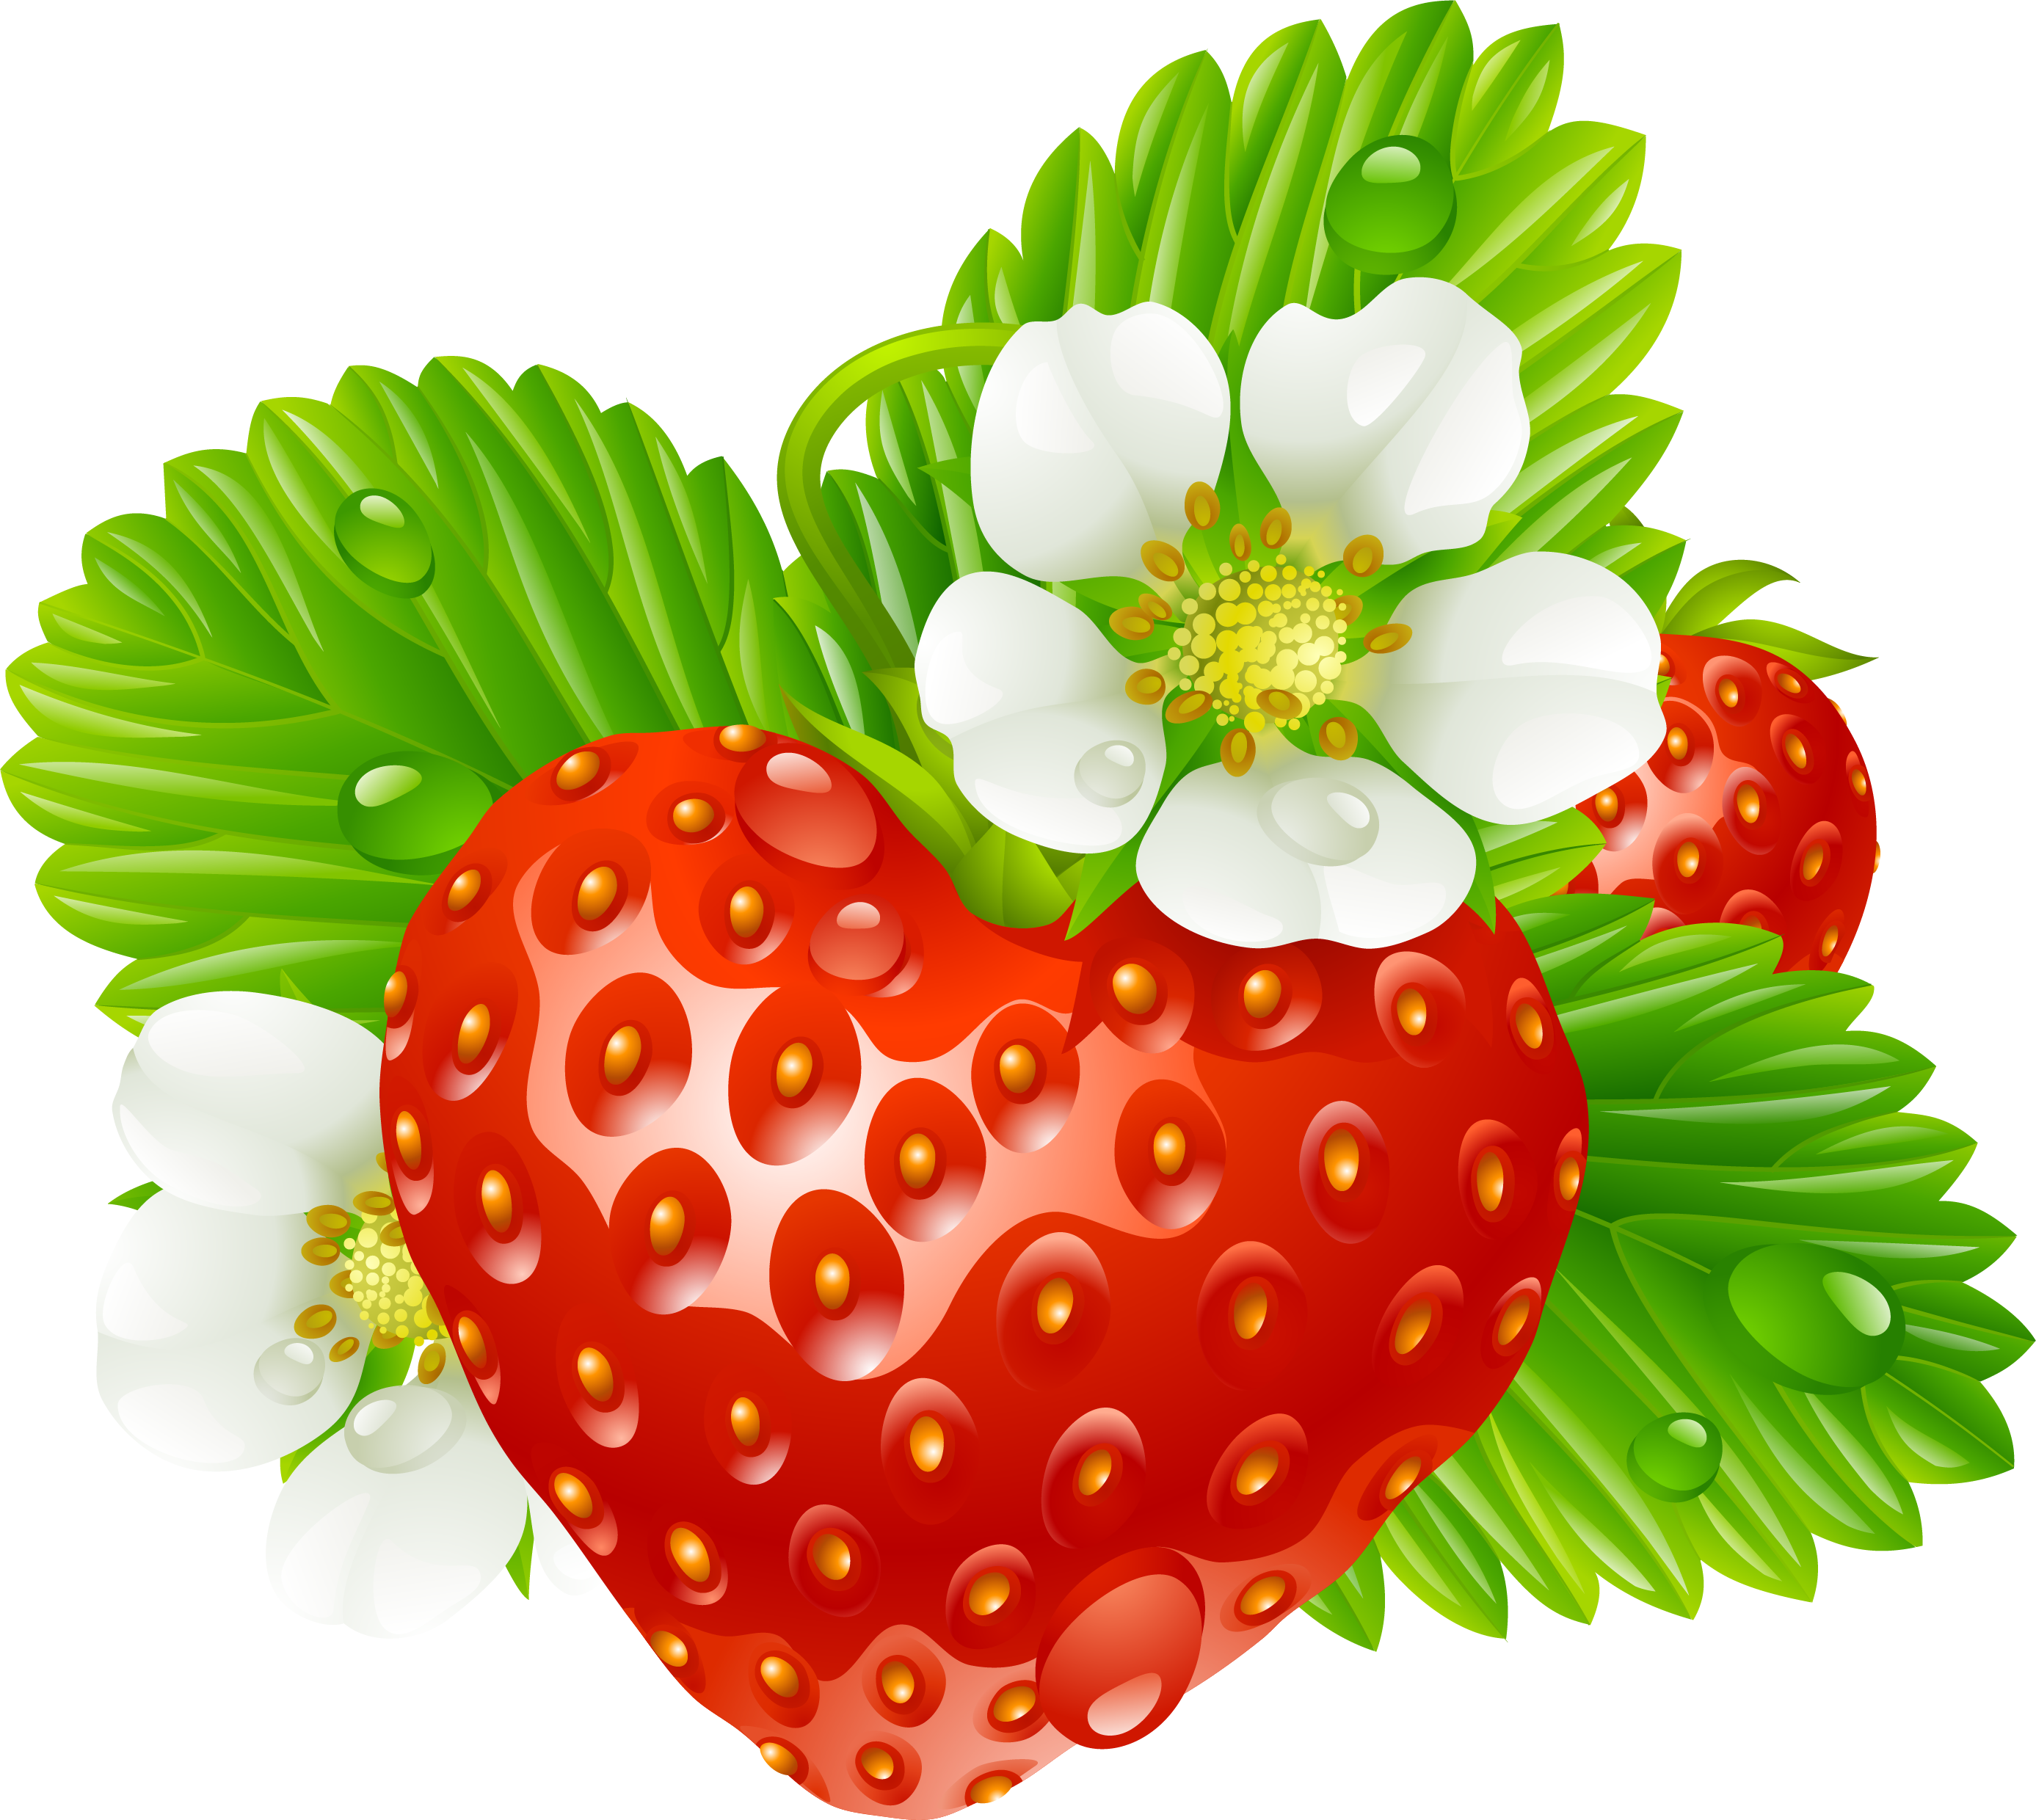 Strawberry tea clip art. Strawberries clipart watercolor